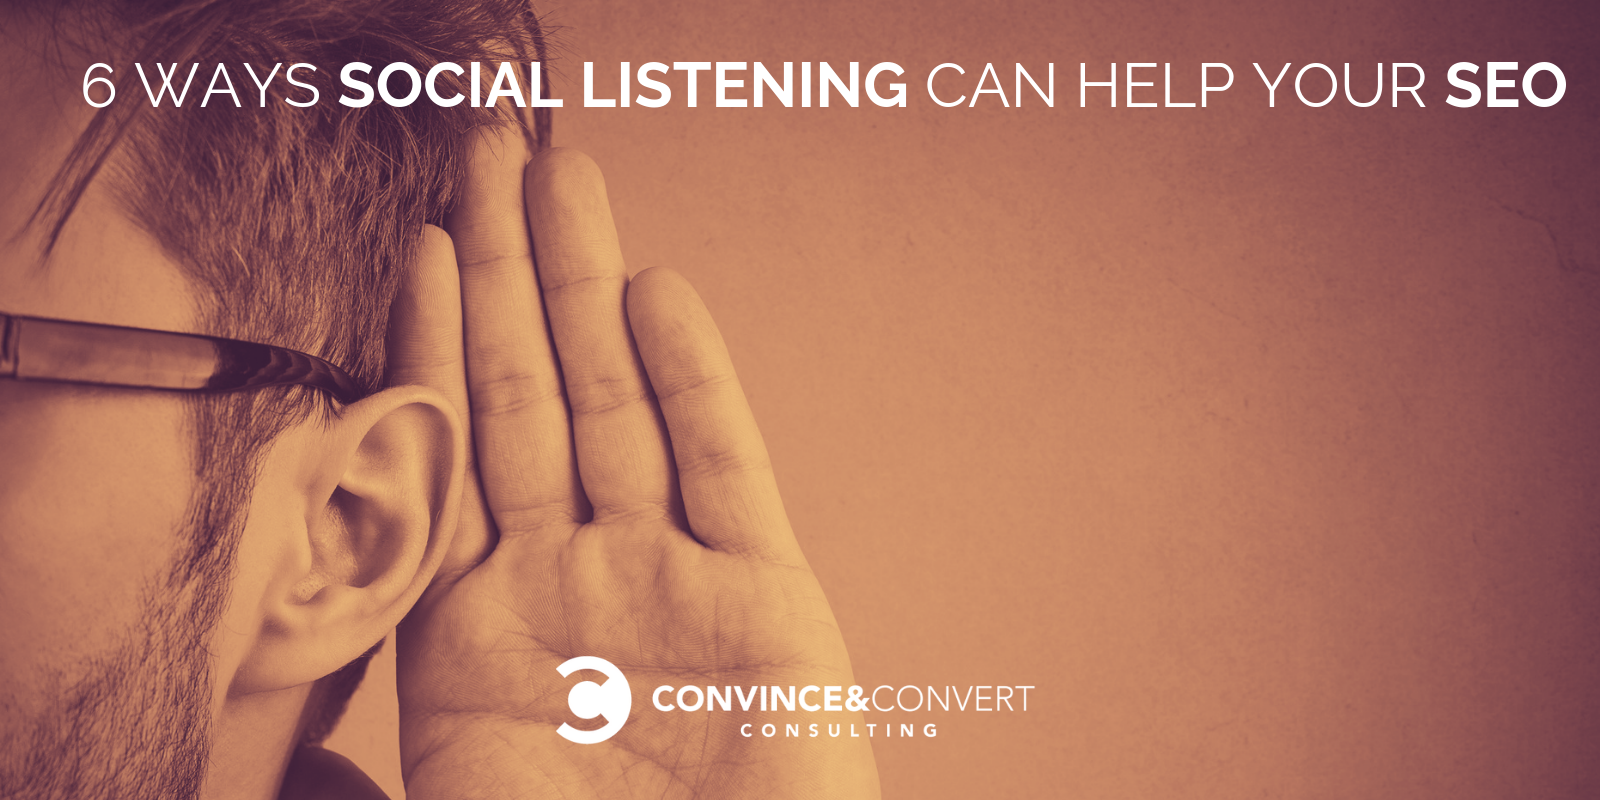 6 Ways Social Listening Can Help Your SEO